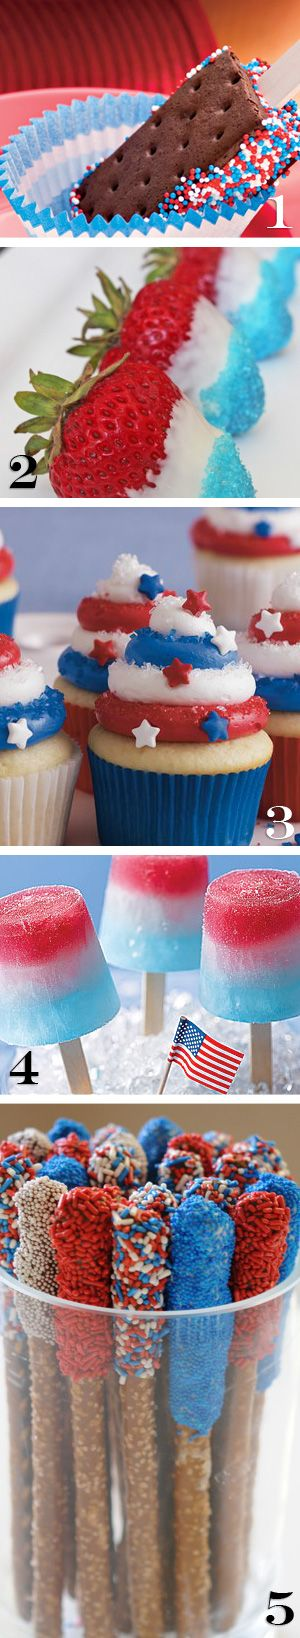 Patriotic Desserts ~ Spangled Sandwich Pop, All American Chocolate Covered Strawberries, Red,